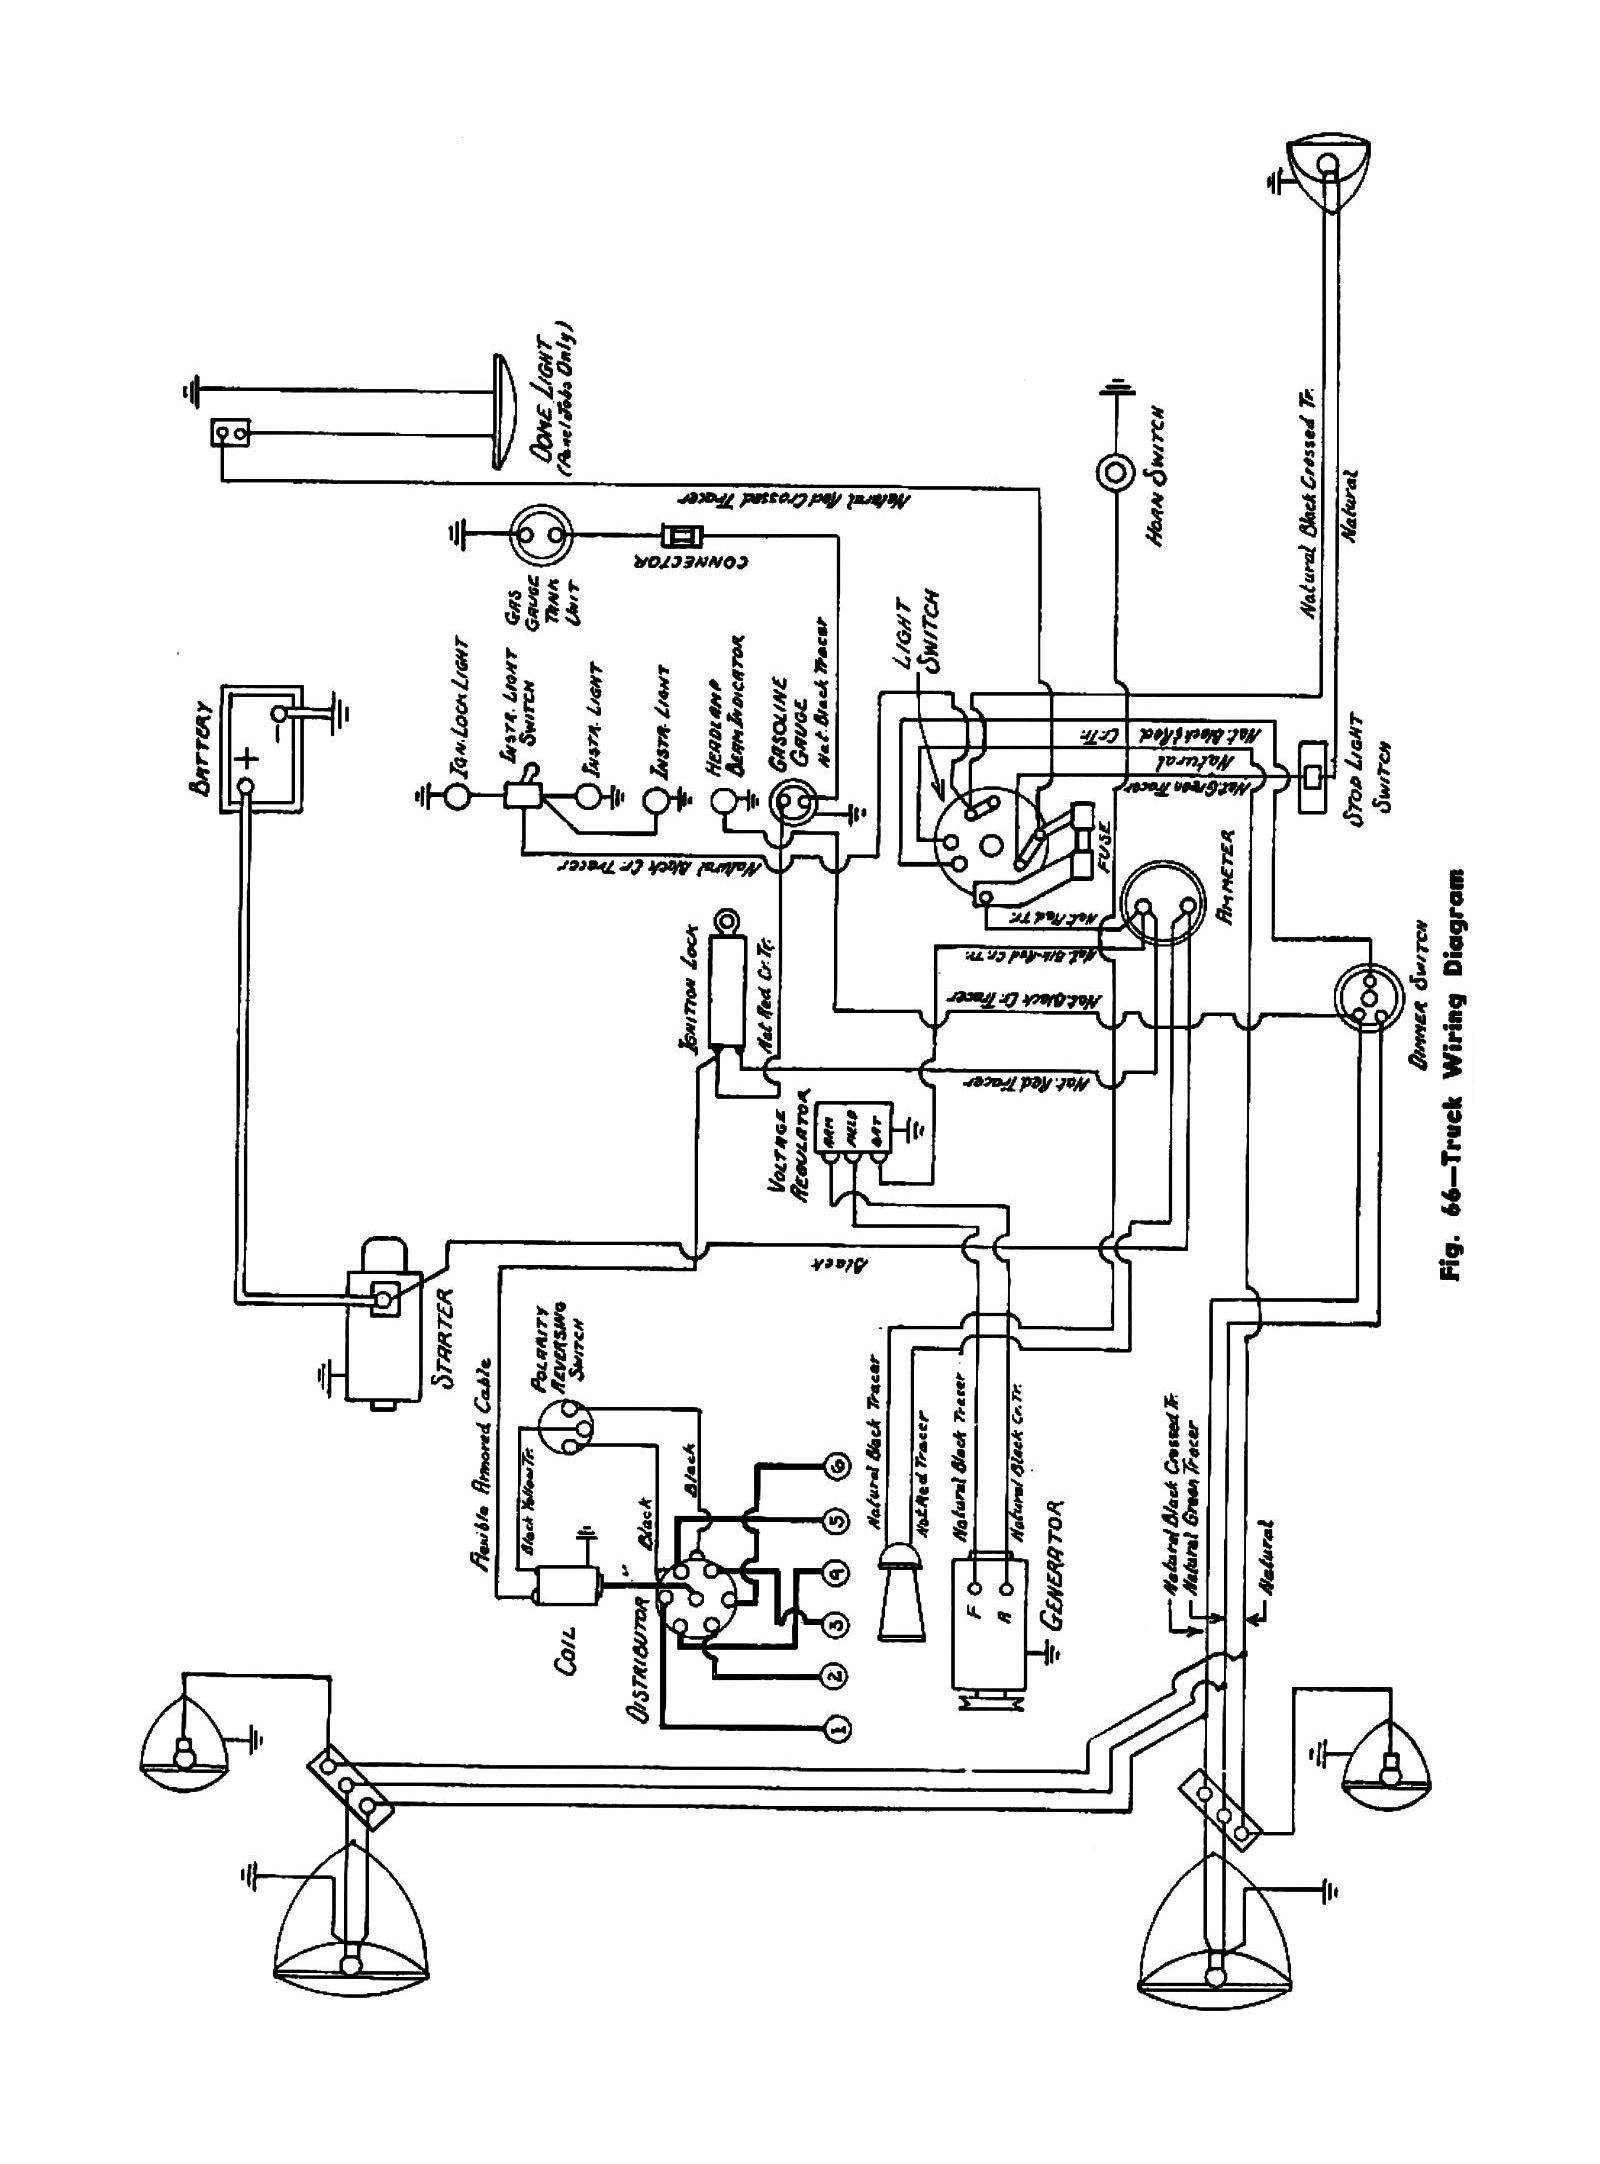 1958 Chevy Ammeter Wiring Schematic - Wiring Diagrams Schematic on 1954 dodge wiring diagram, 1964 mustang wiring diagram, 1949 cadillac wiring diagram, 1926 ford wiring diagram, 1940 buick wiring diagram, 1967 ford wiring diagram, 1937 ford wiring diagram, 1957 pontiac wiring diagram, 1958 ford continental kit, 1957 plymouth wiring diagram, 1957 dodge wiring diagram, 59 ford wiring diagram, 1930 ford wiring diagram, 1953 buick wiring diagram, 1950 ford wiring diagram, 1931 ford model a wiring diagram, 1955 dodge wiring diagram, 1955 buick wiring diagram, 1963 ford wiring diagram, 1950 cadillac wiring diagram,